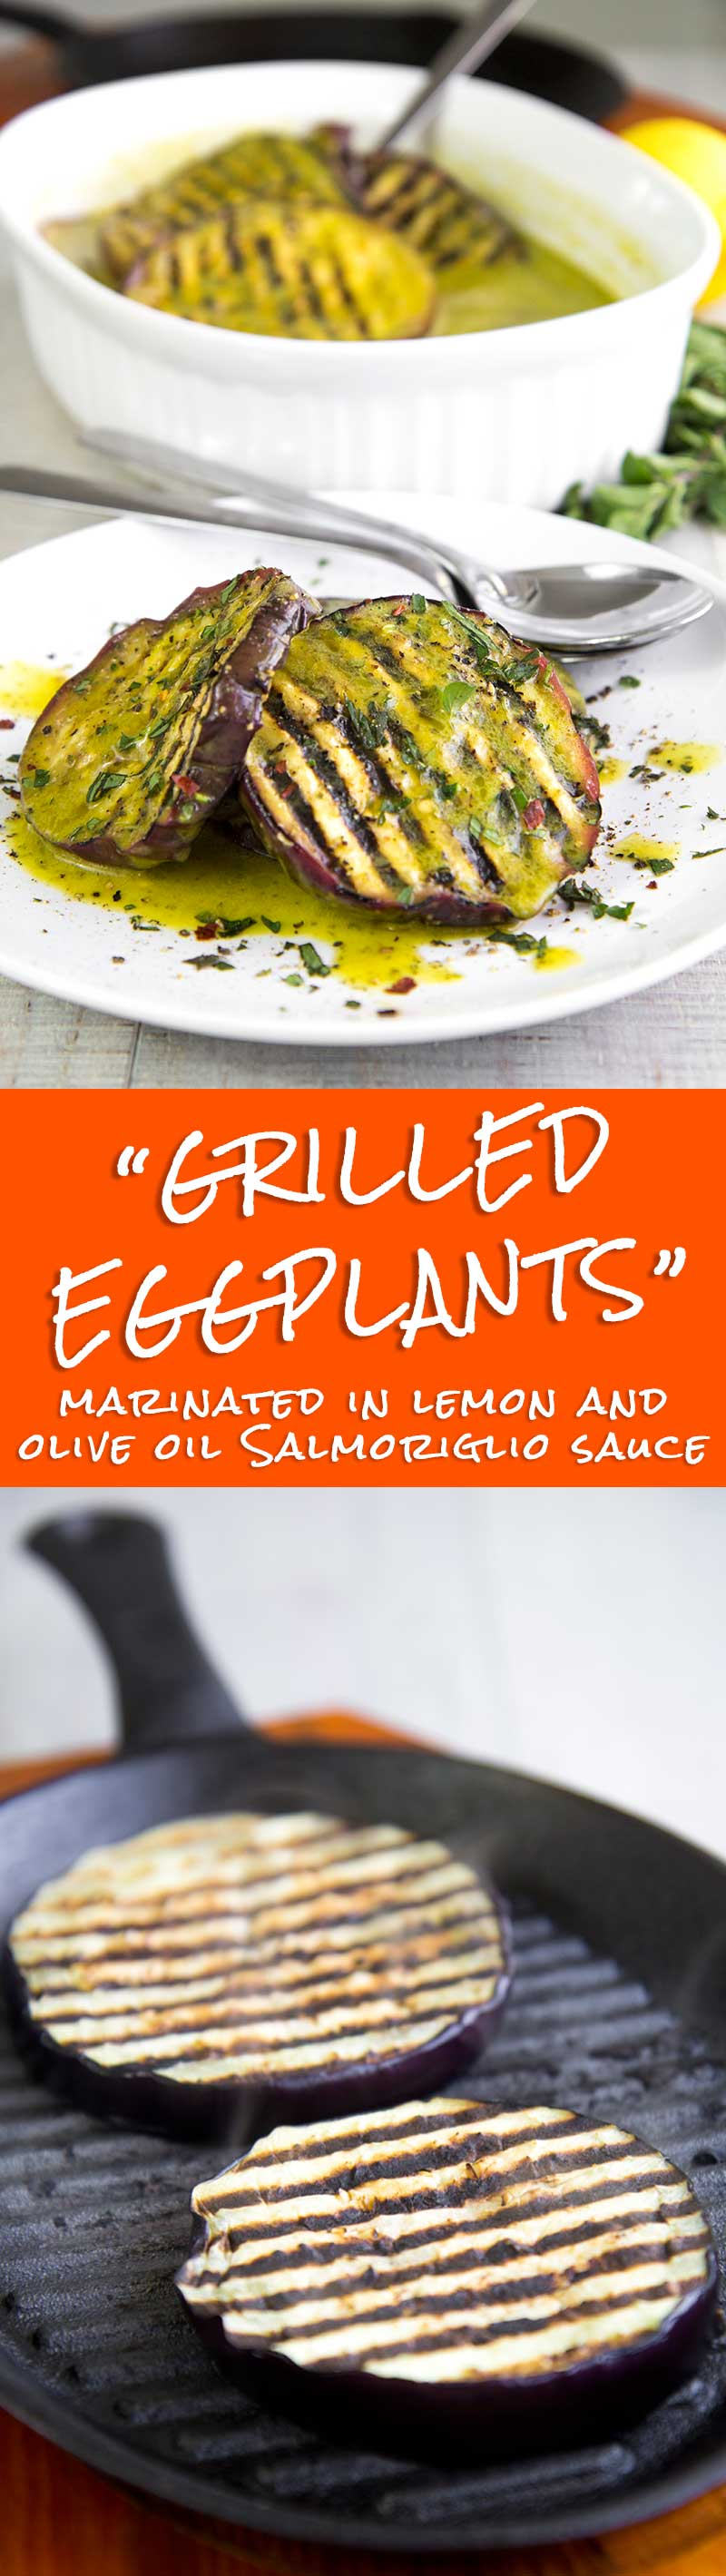 GRILLED EGGPLANT MARINATED WITH SALMORIGLIO (lemon and oil sauce)